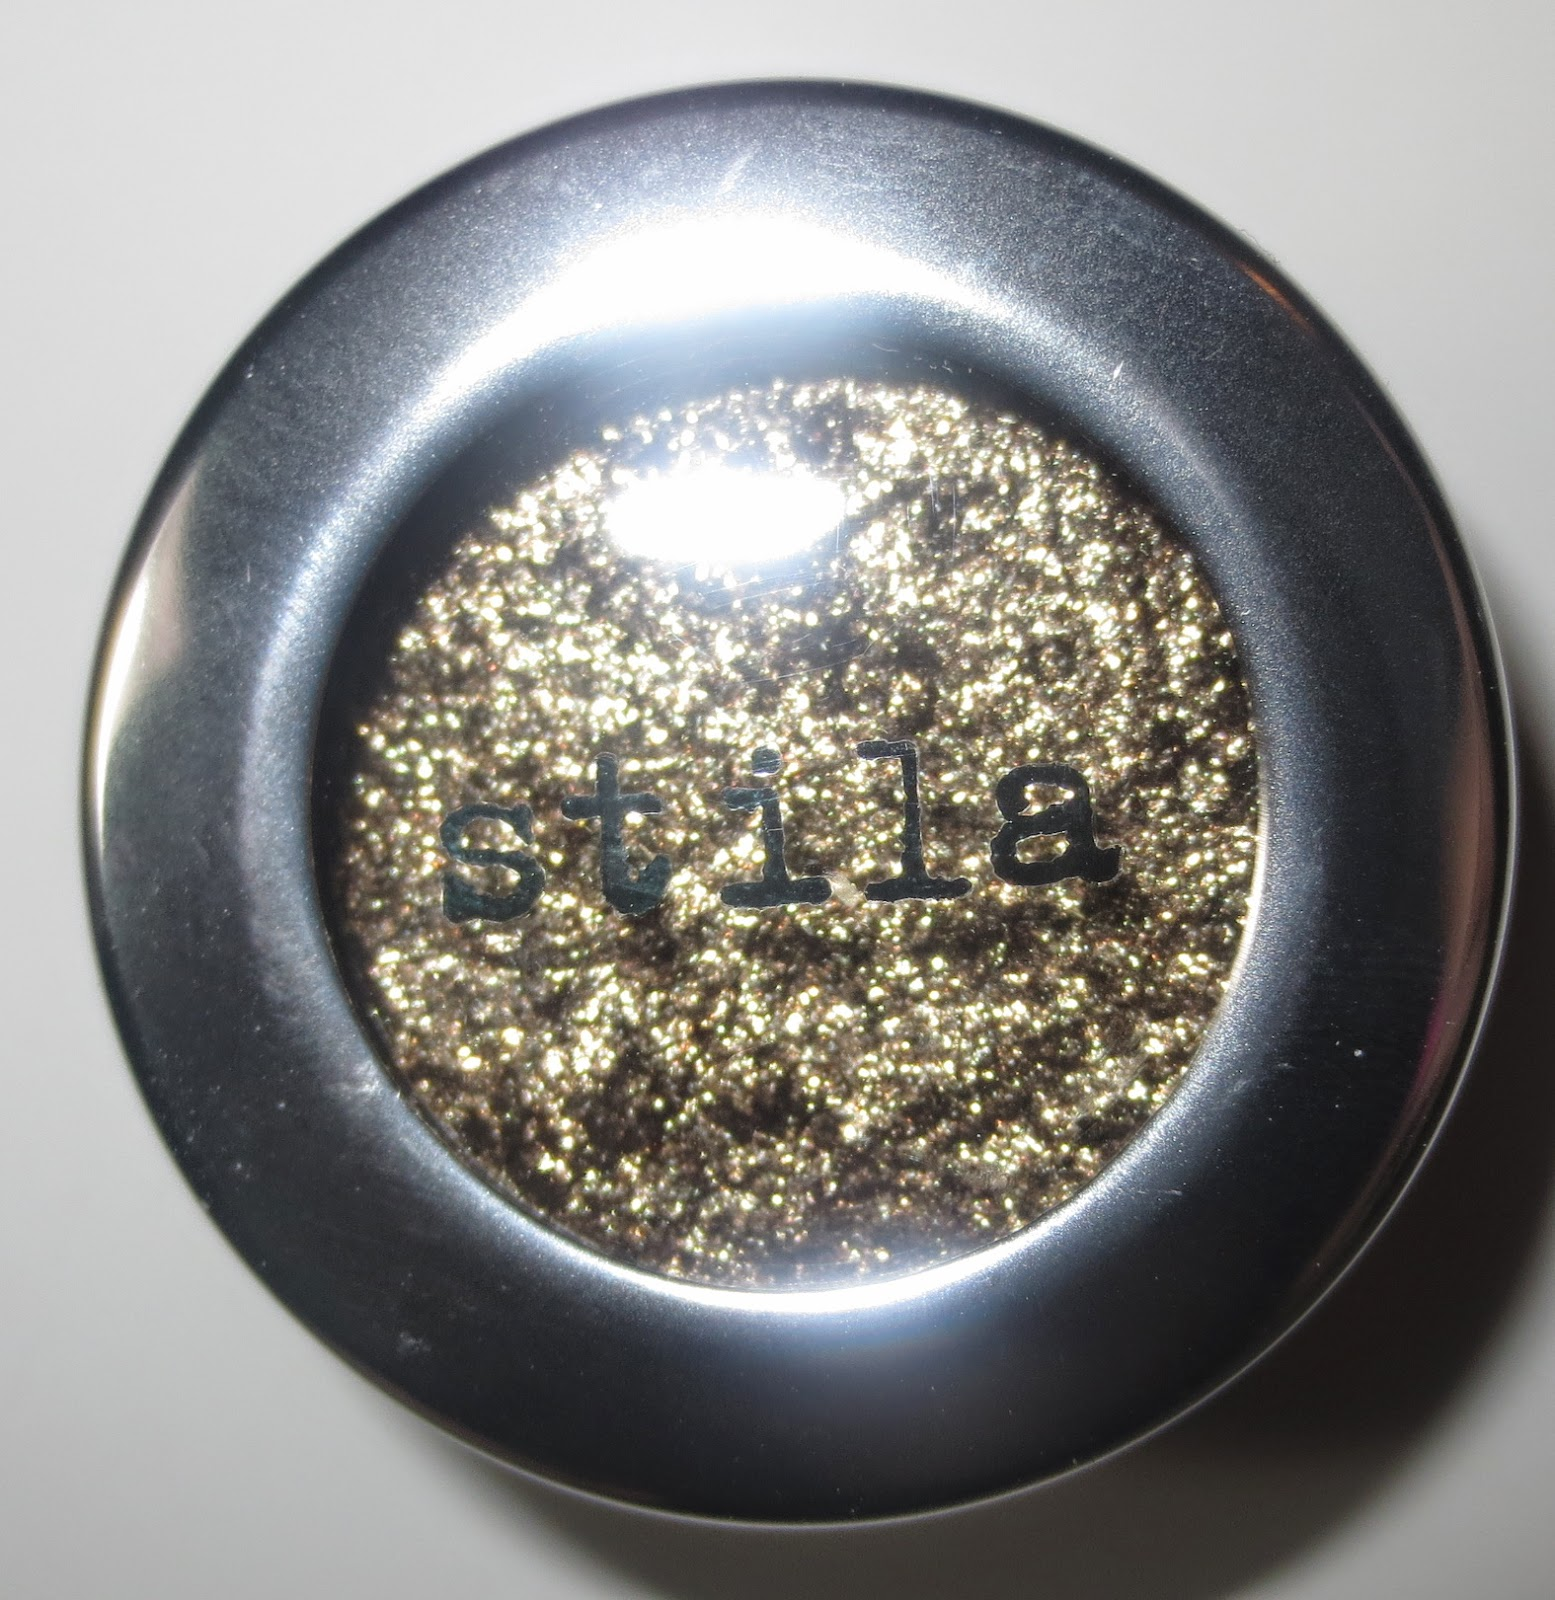 Stila Magnificent Metals Foil Finish Eye Shadow - Vintage Black Gold